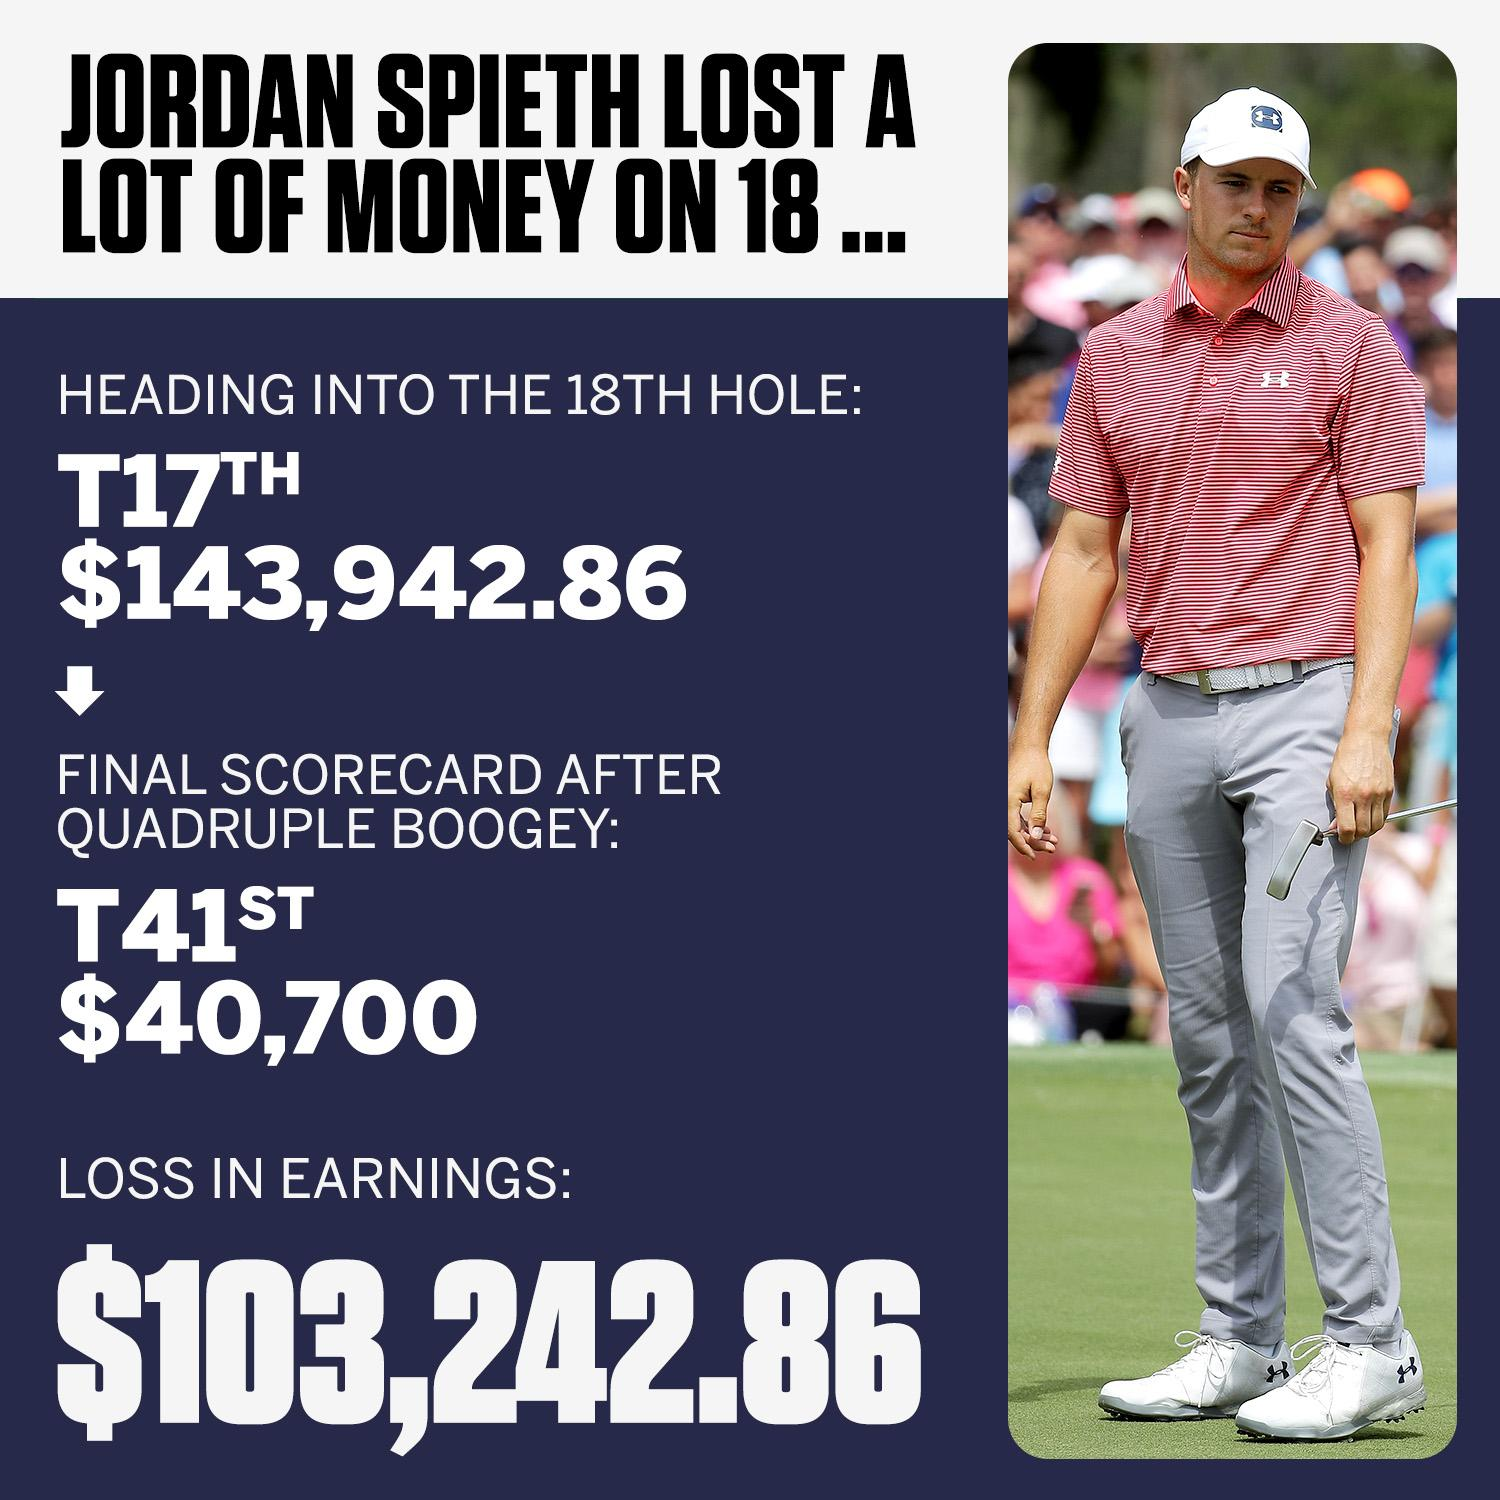 That quadruple bogey on the 18th hole cost Jordan Spieth over 100 grand �� https://t.co/GwADnGqx1y